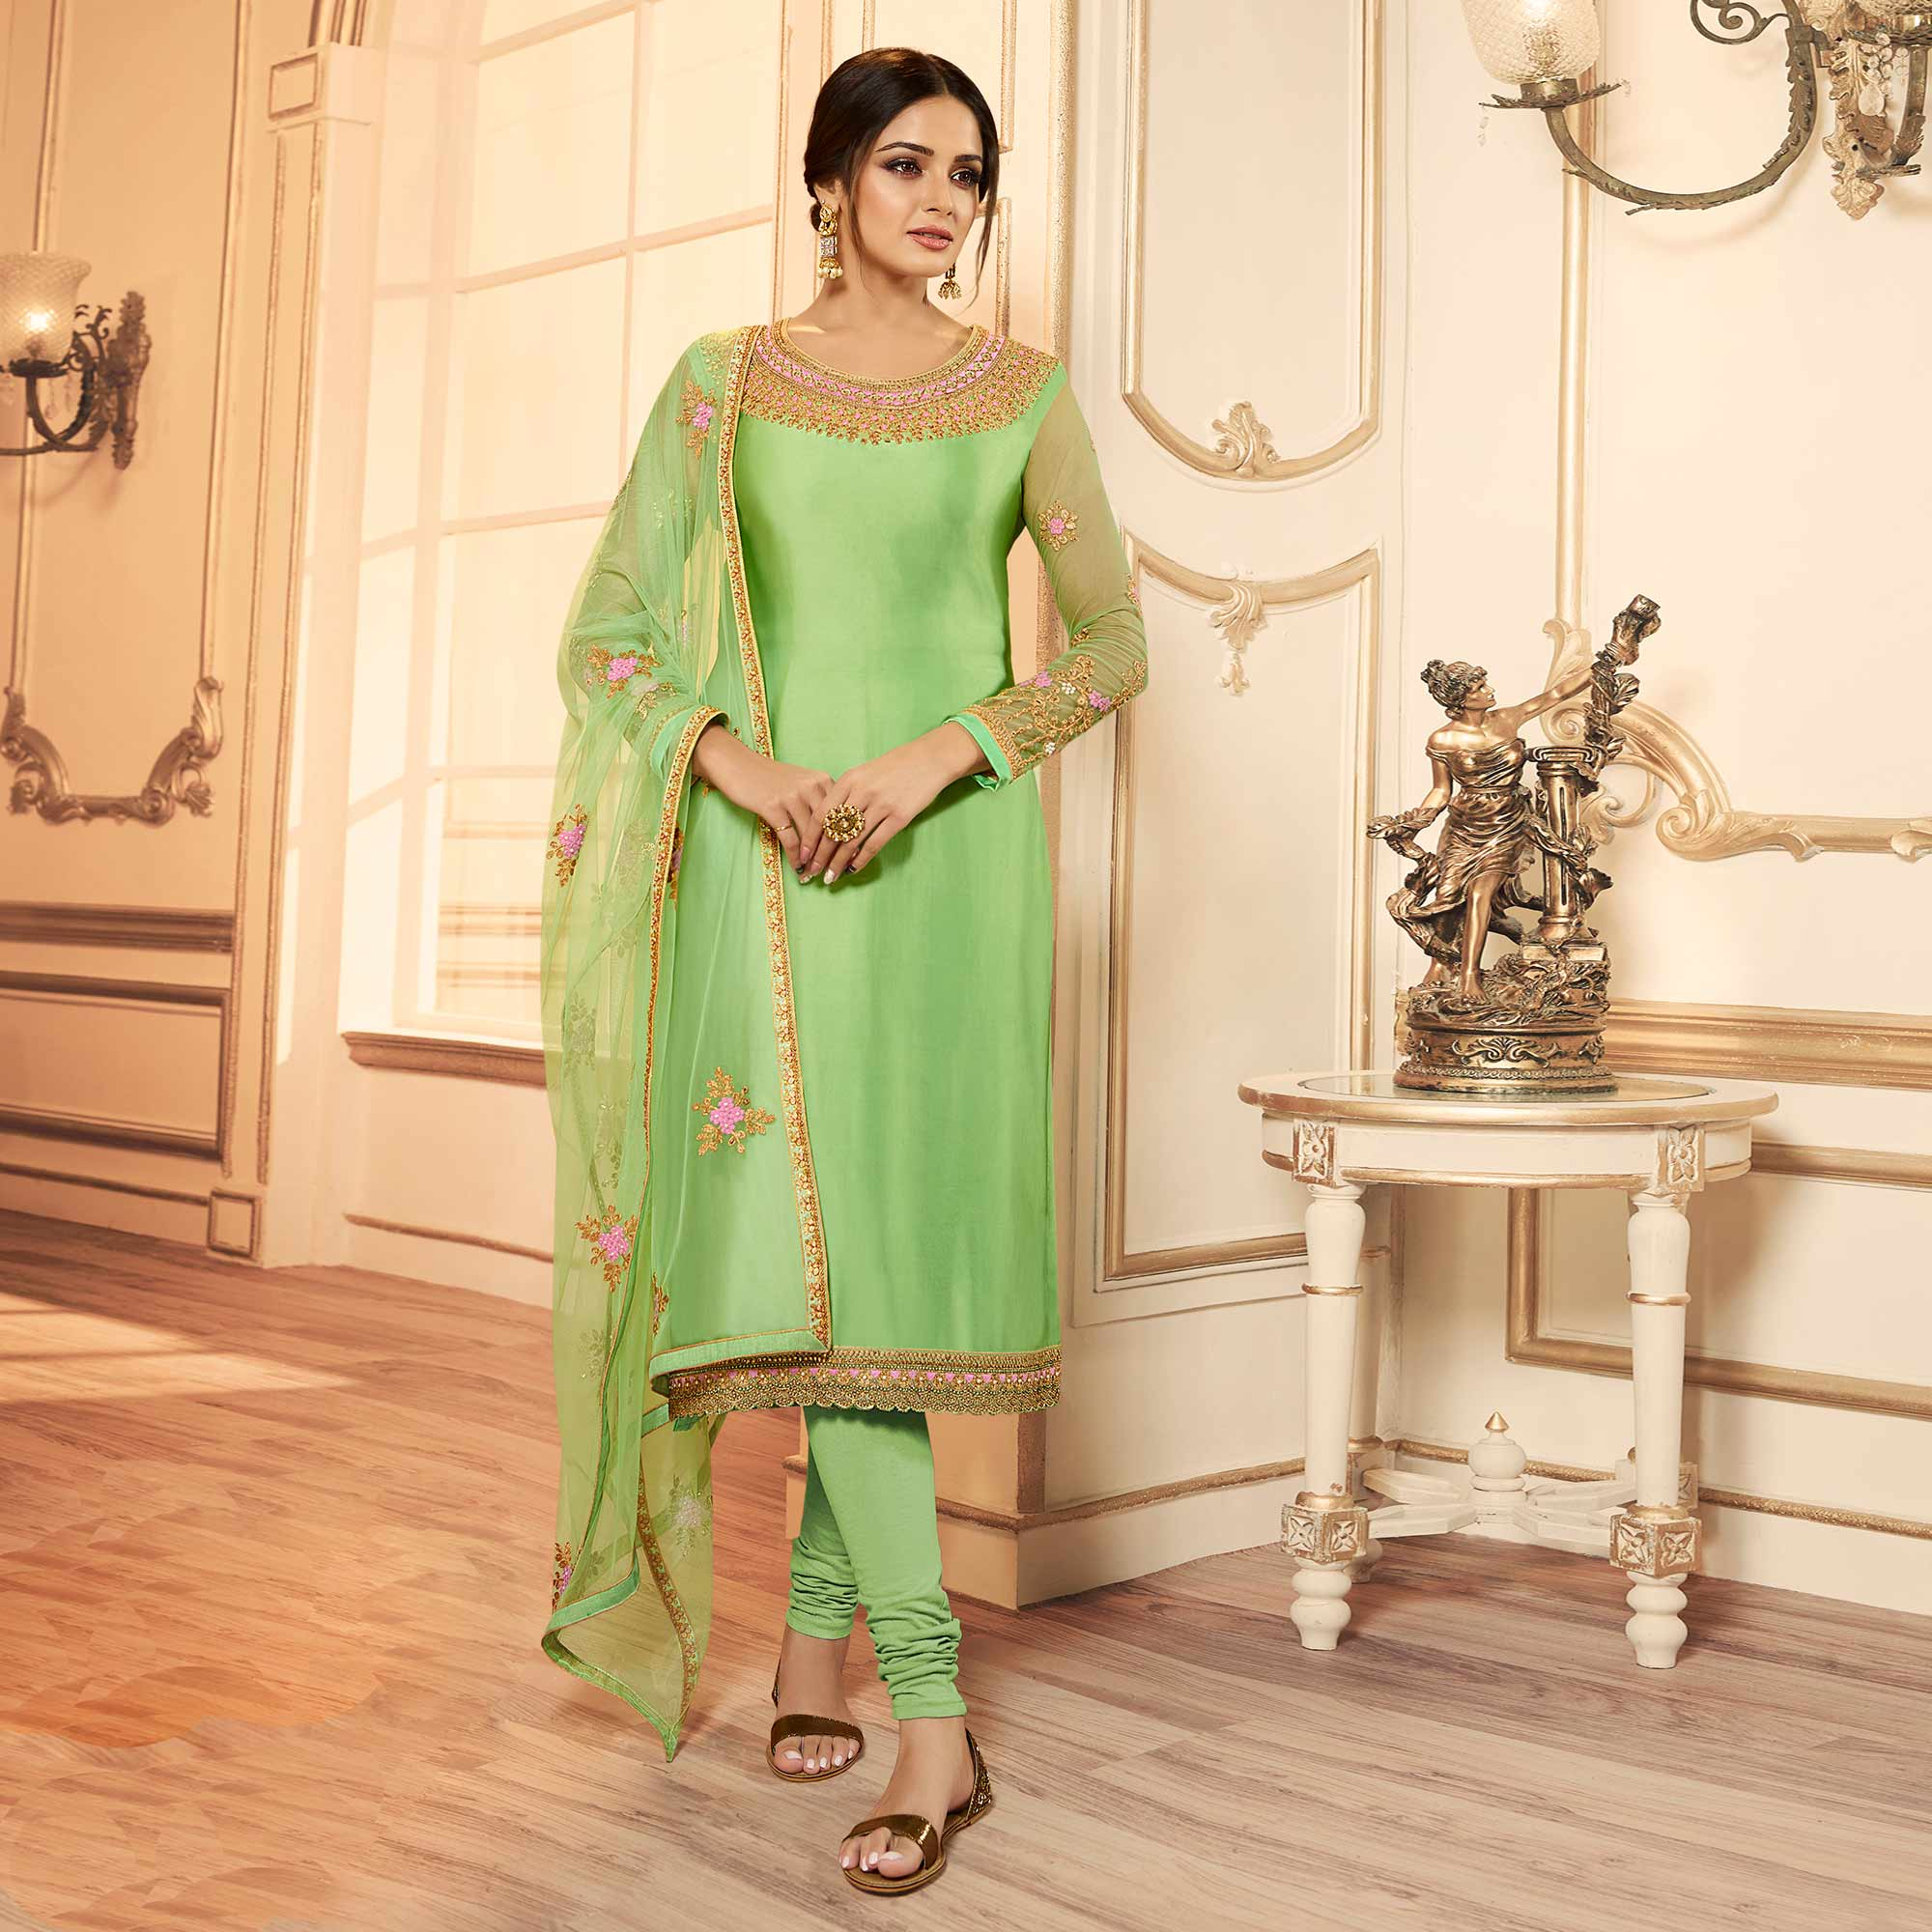 Opulent Pista Green Colored Party Wear Embroidered Georgette-satin Lehenga Kameez